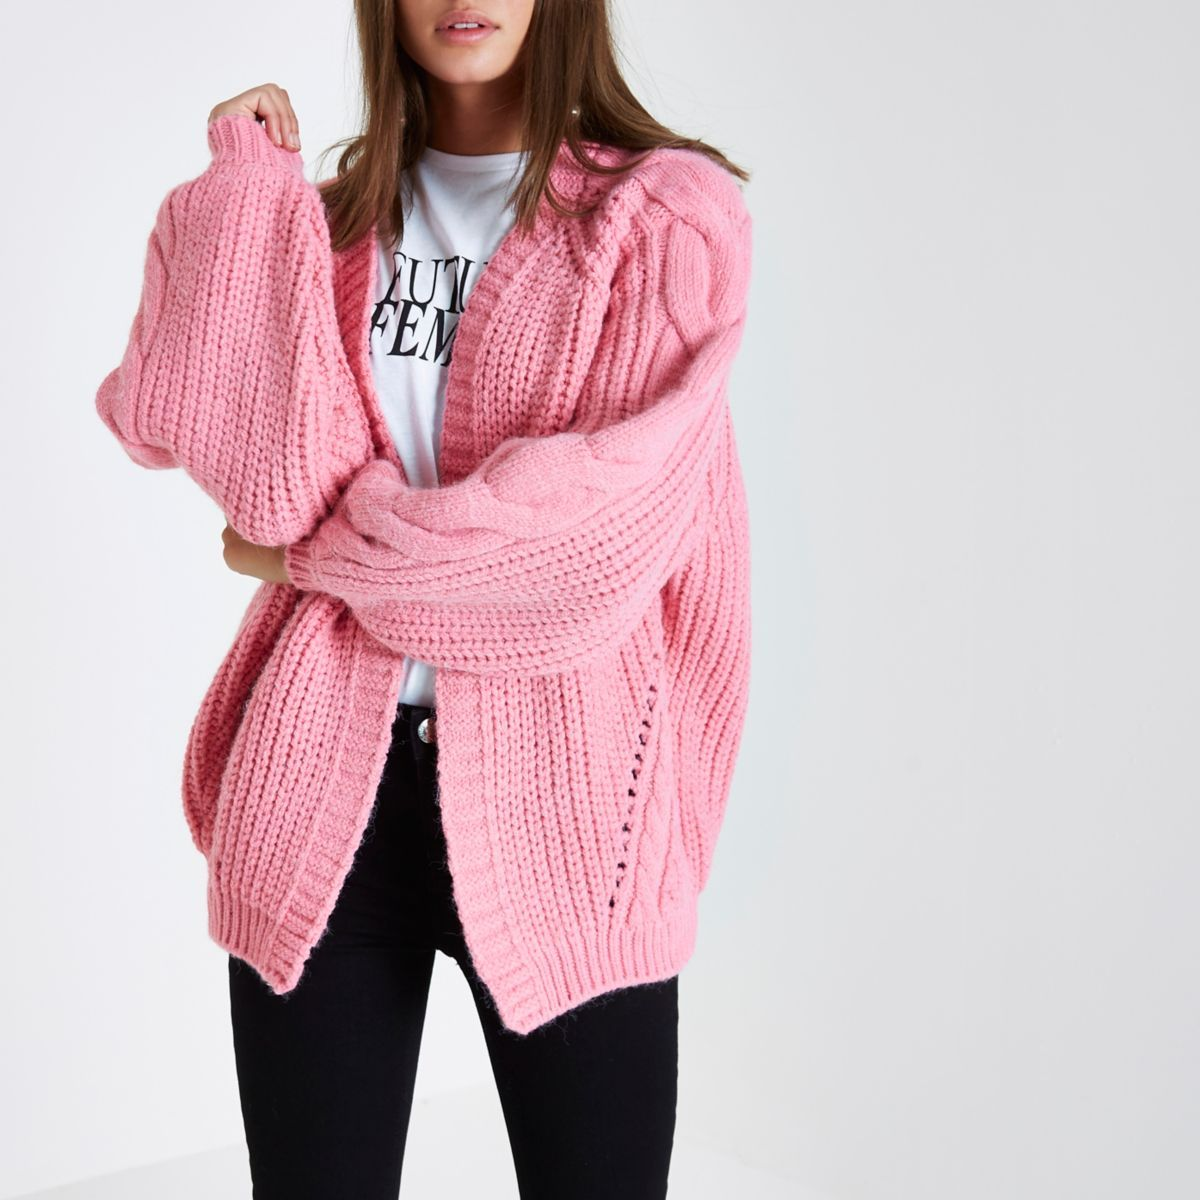 ce09e06ceb3 Heavyweight knit fabric Chunky cable knit detail Long balloon sleeve ...